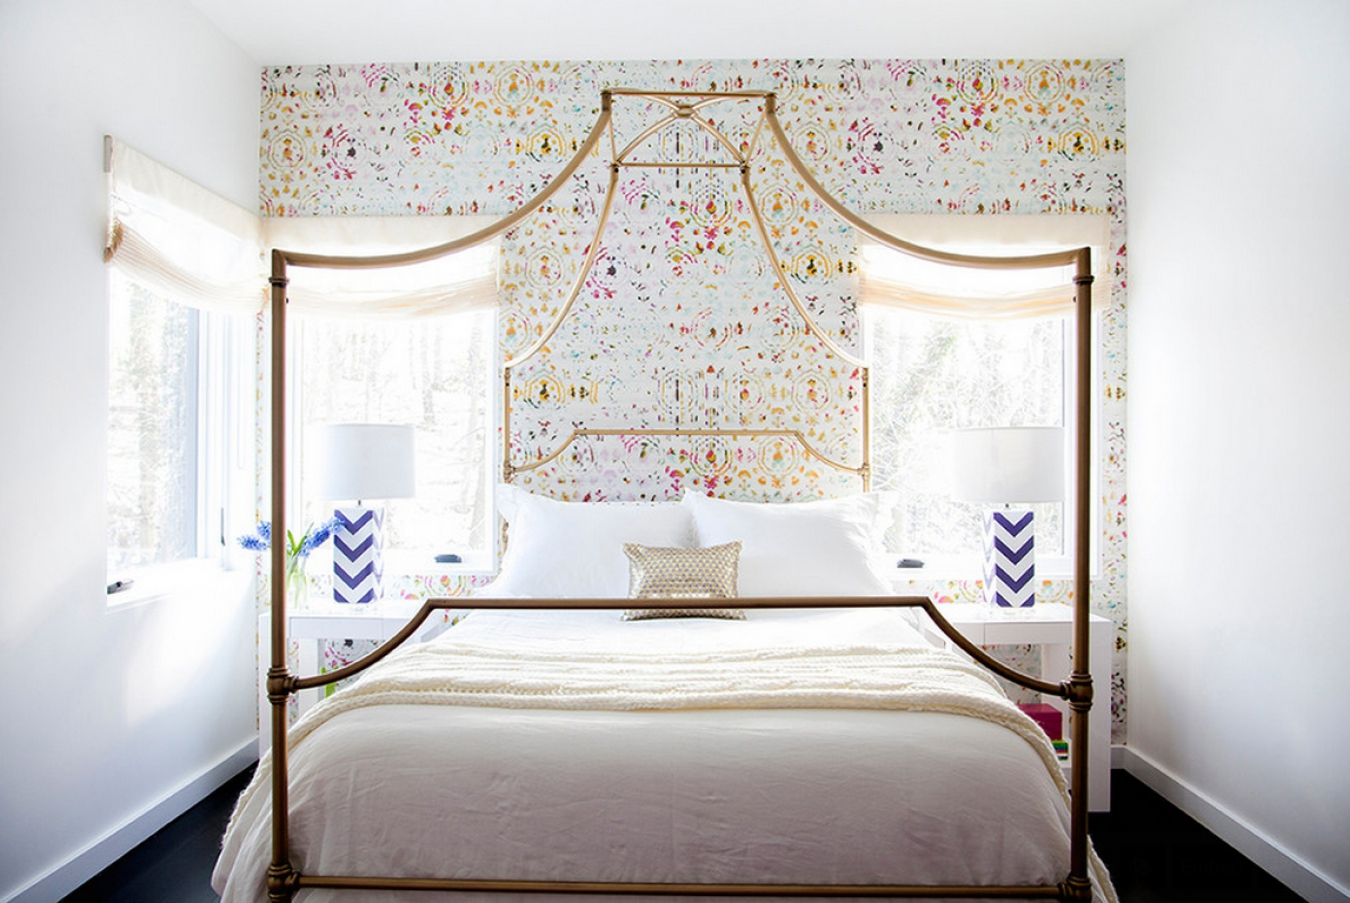 wallpaper design wallpaper design Amazing Wallpaper Designs Which Can Improve Any Bedroom 5